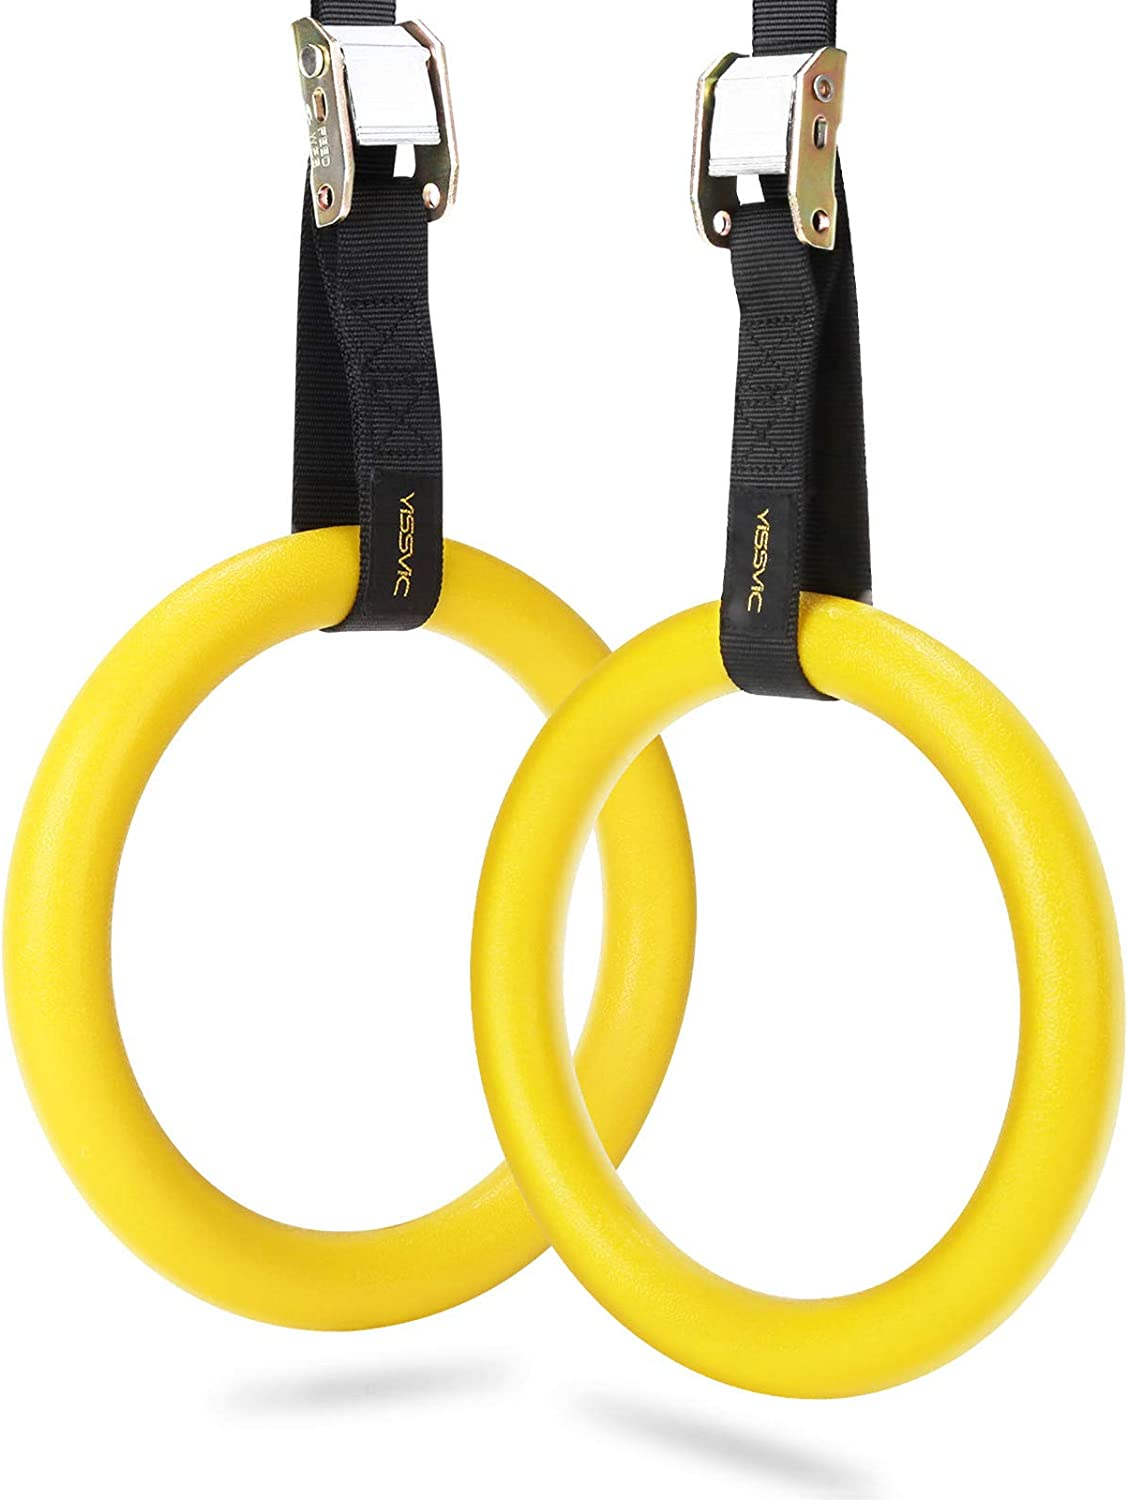 Gym Rings,ABS Gymnastic Rings with 2pcs Tough Polypropylene Straps Gym Fitness Training Exercise Tool for Body Weight Workouts